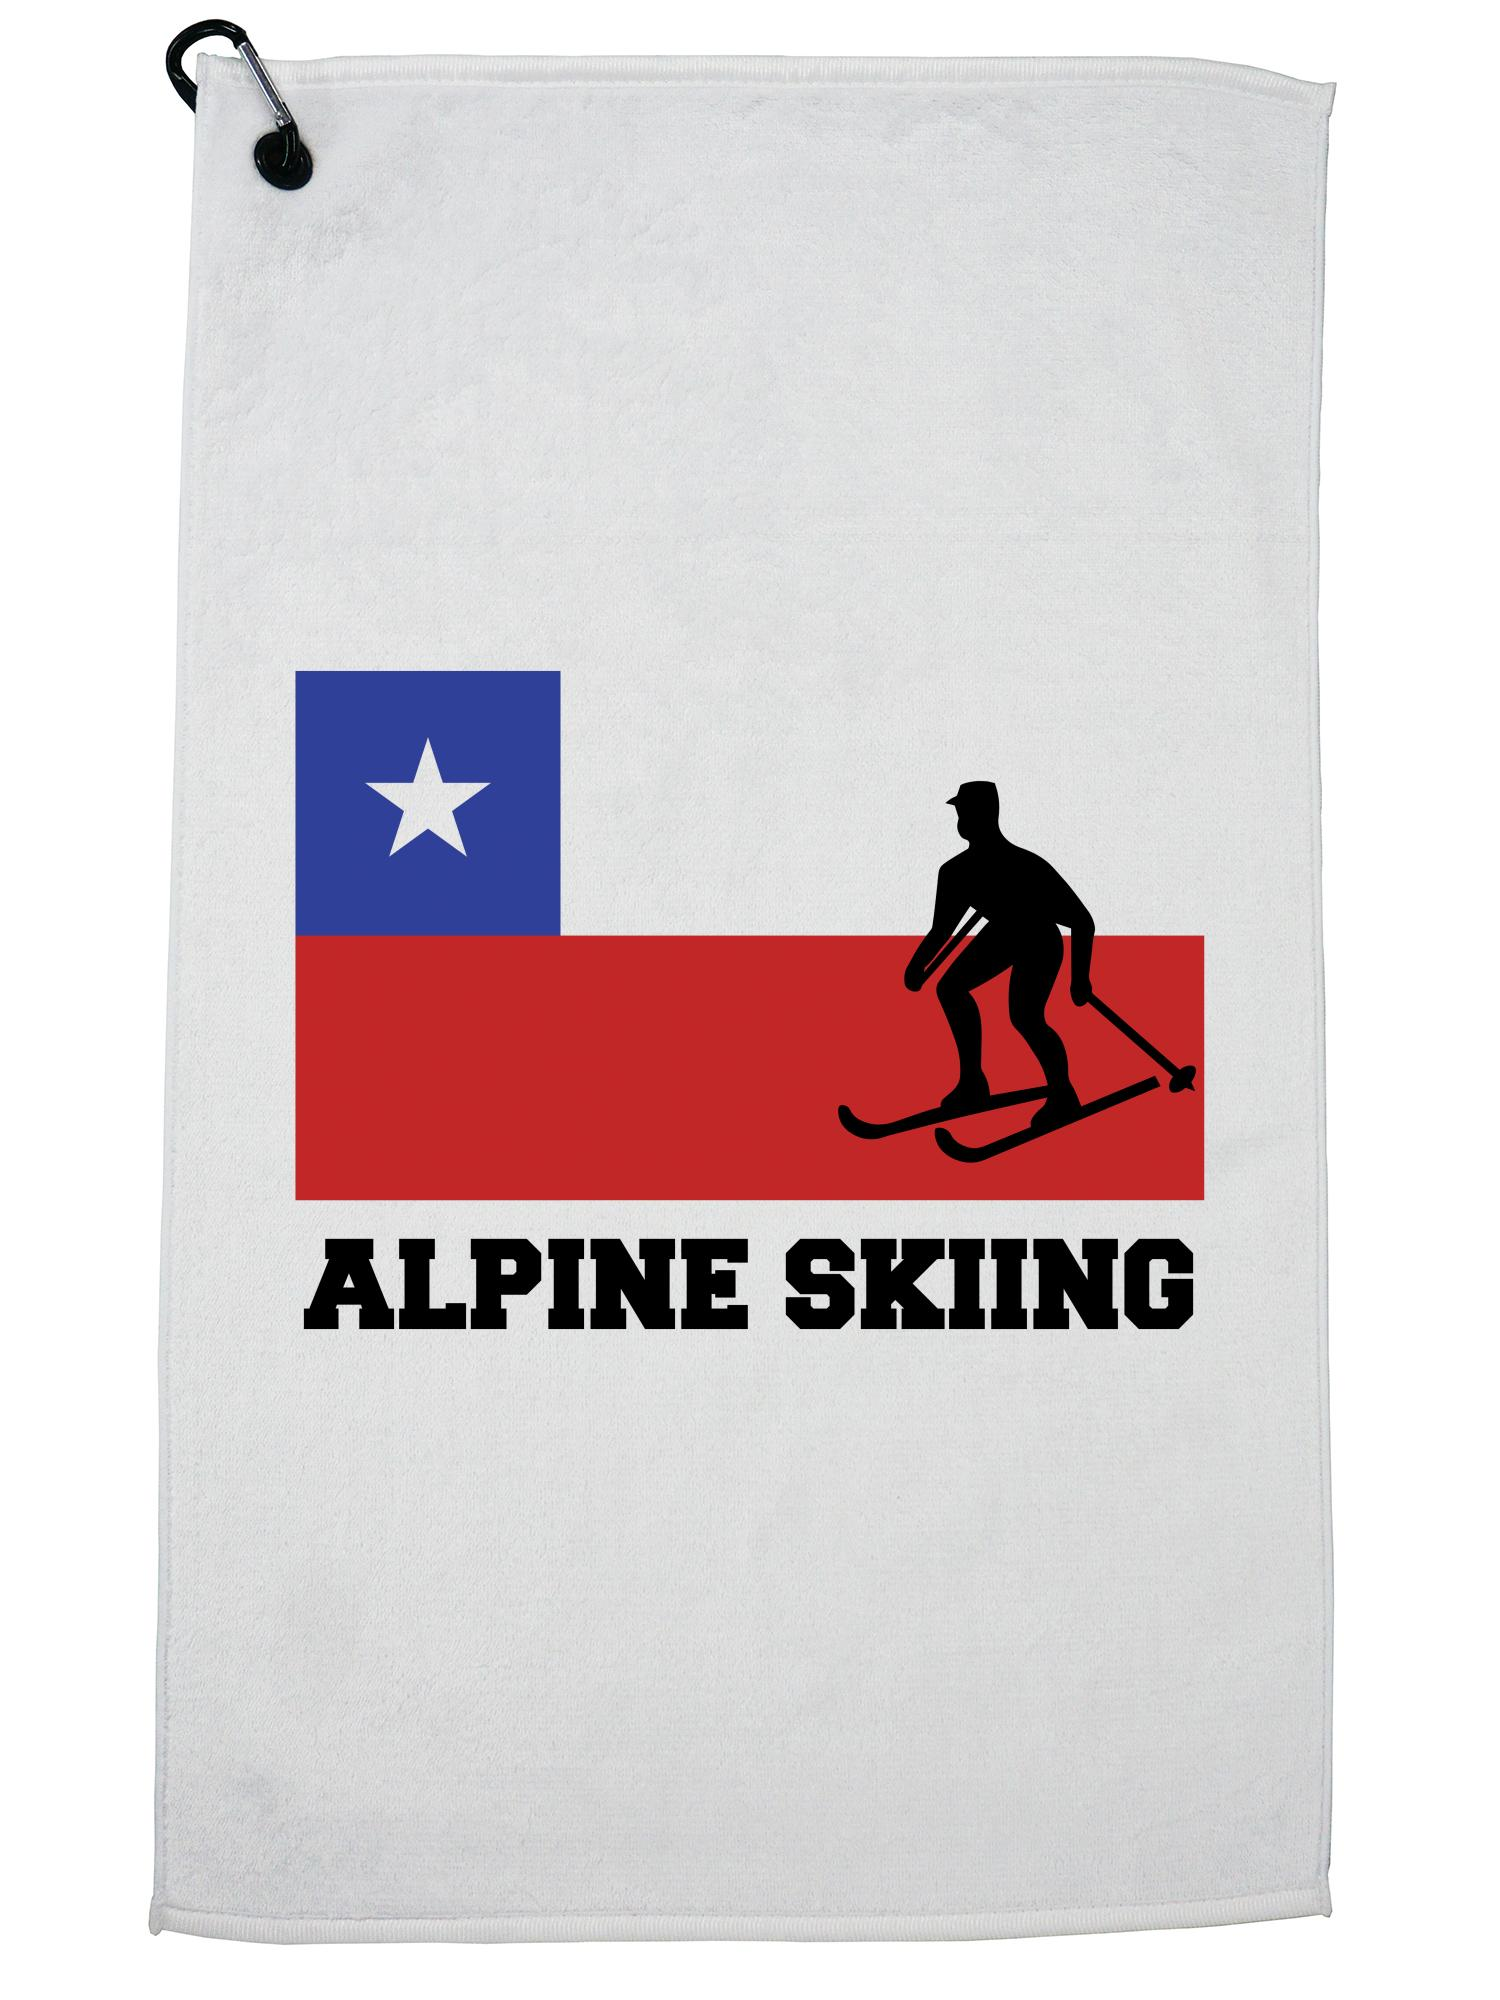 Chile Olympic Alpine Skiing Flag Silhouette Golf Towel with Carabiner Clip by Hollywood Thread